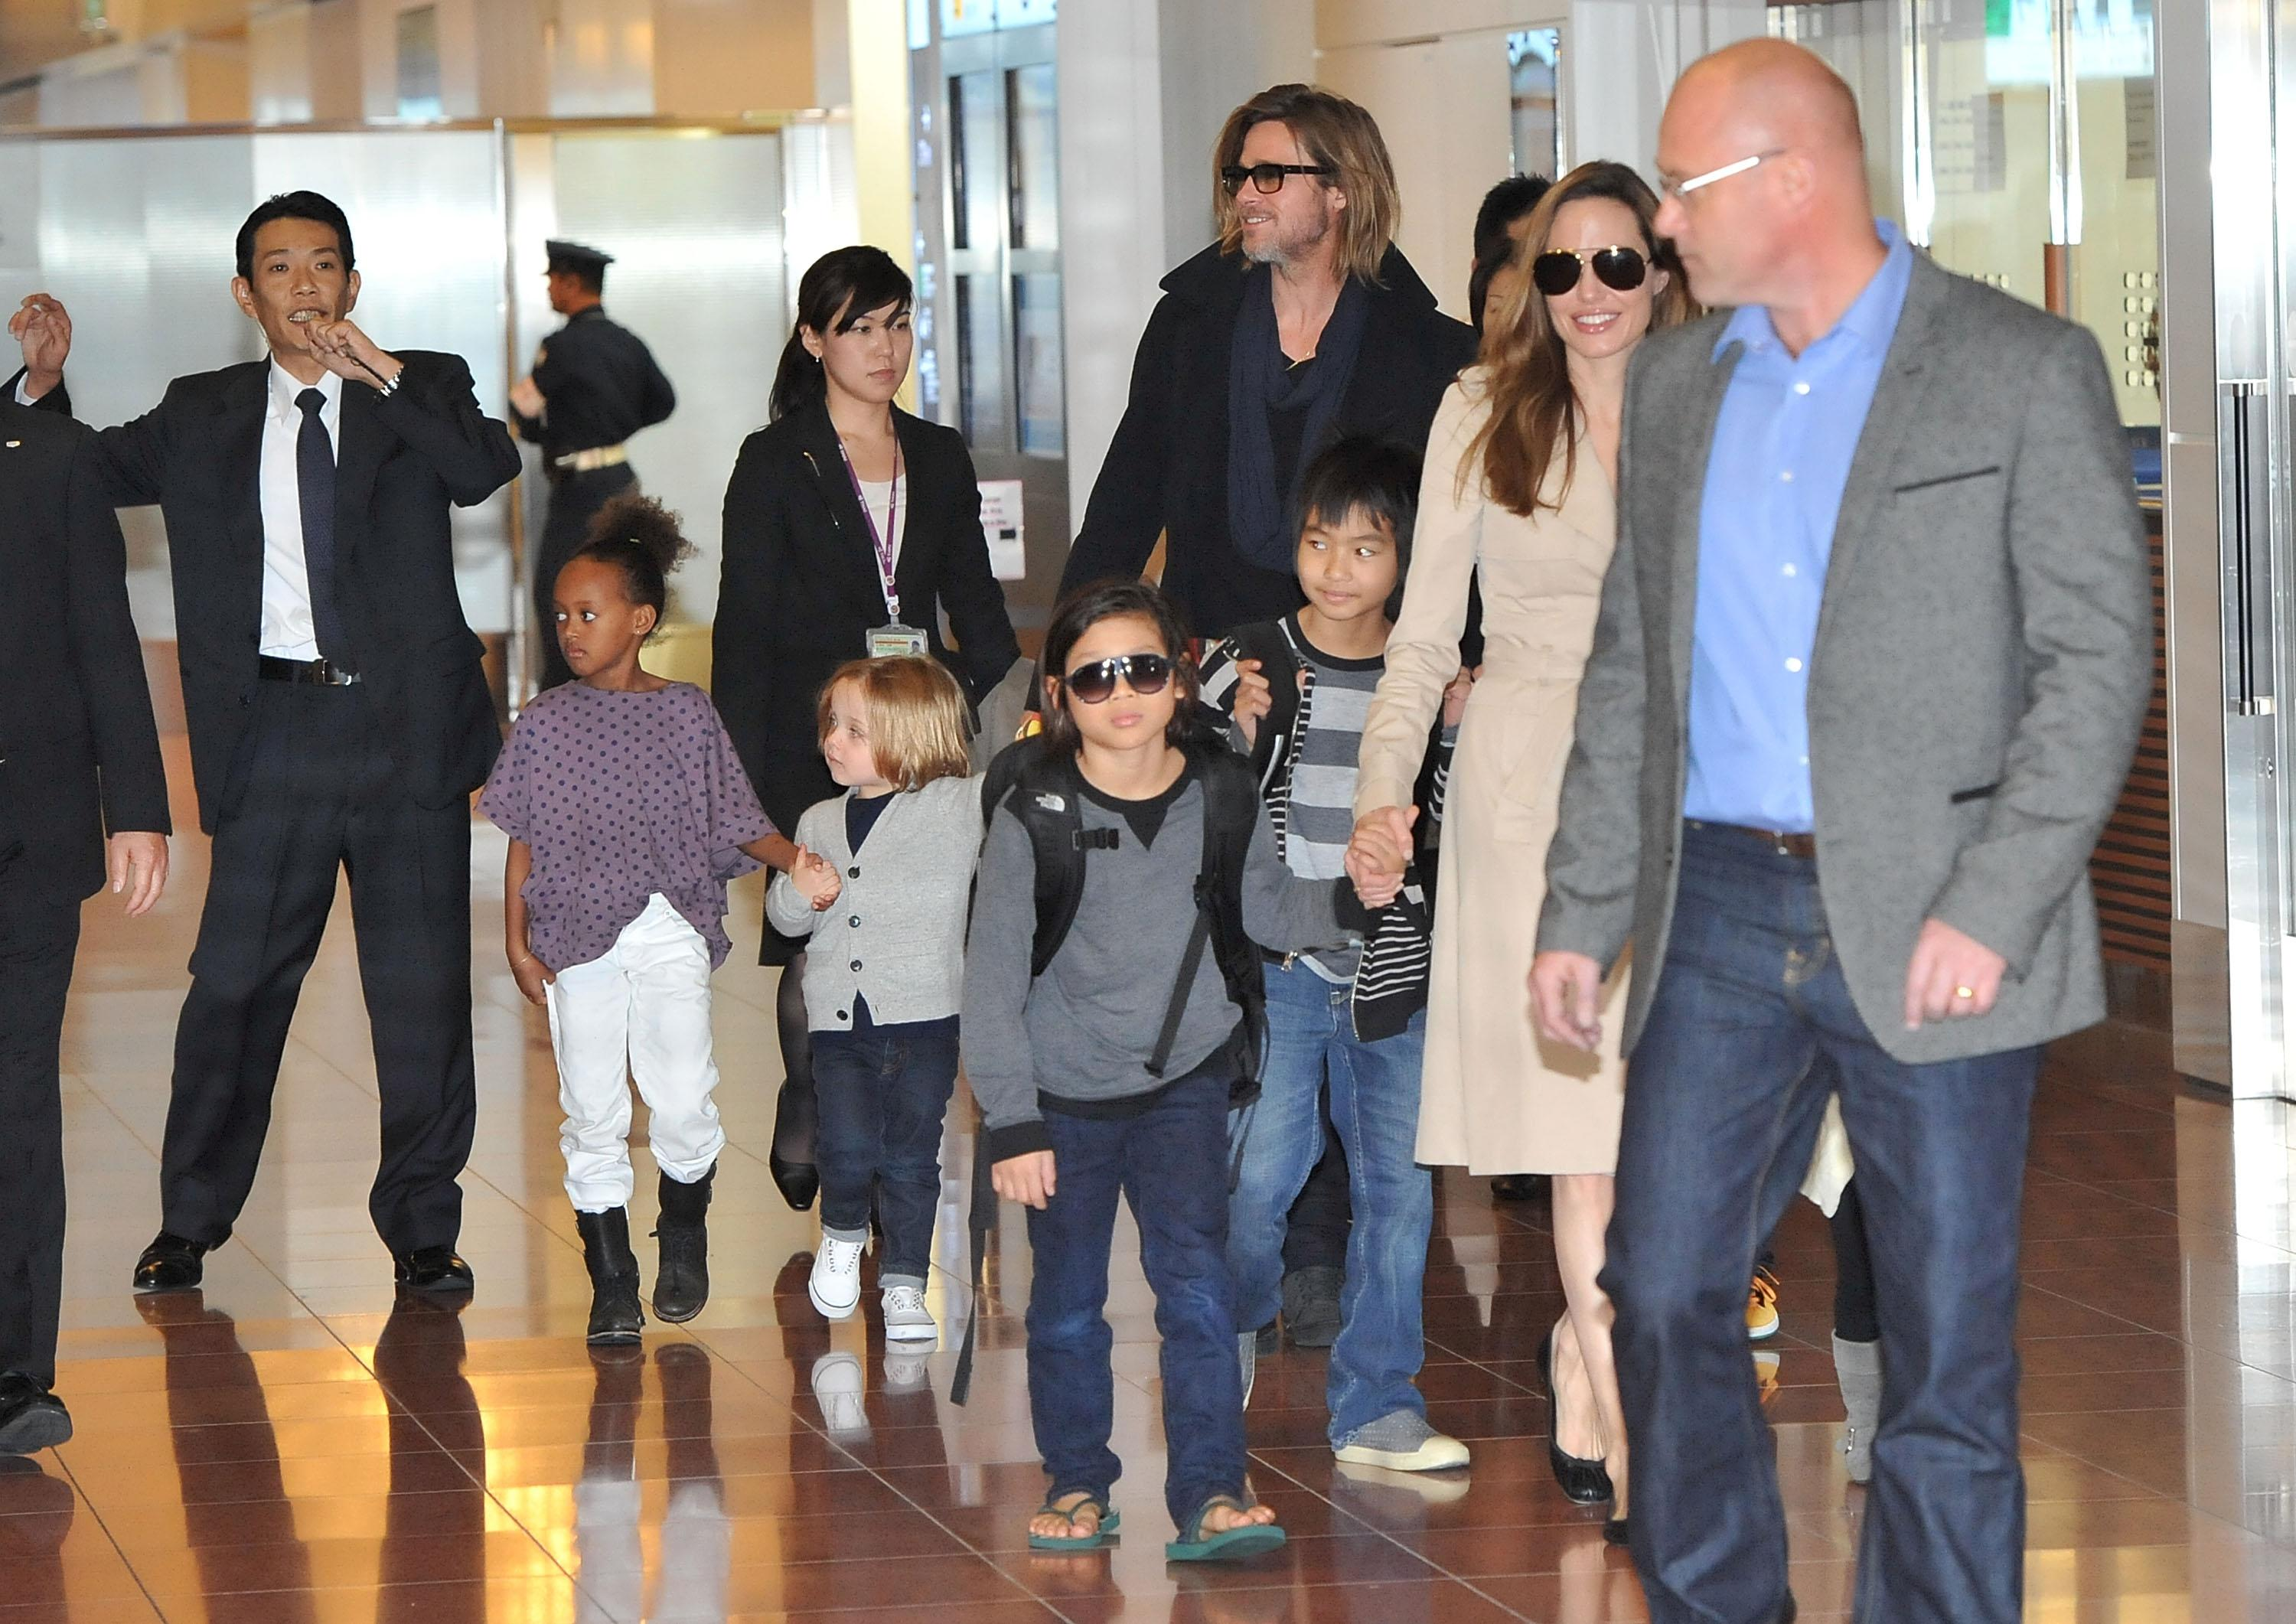 TOKYO, JAPAN - NOVEMBER 08: Brad Pitt, Angelina Jolie and their six children Maddox, Pax, Zahara, Shiloh, Knox, and Vivienne arrive at Haneda International Airport on November 8 in Tokyo, Japan. (Photo by Jun Sato/WireImage)